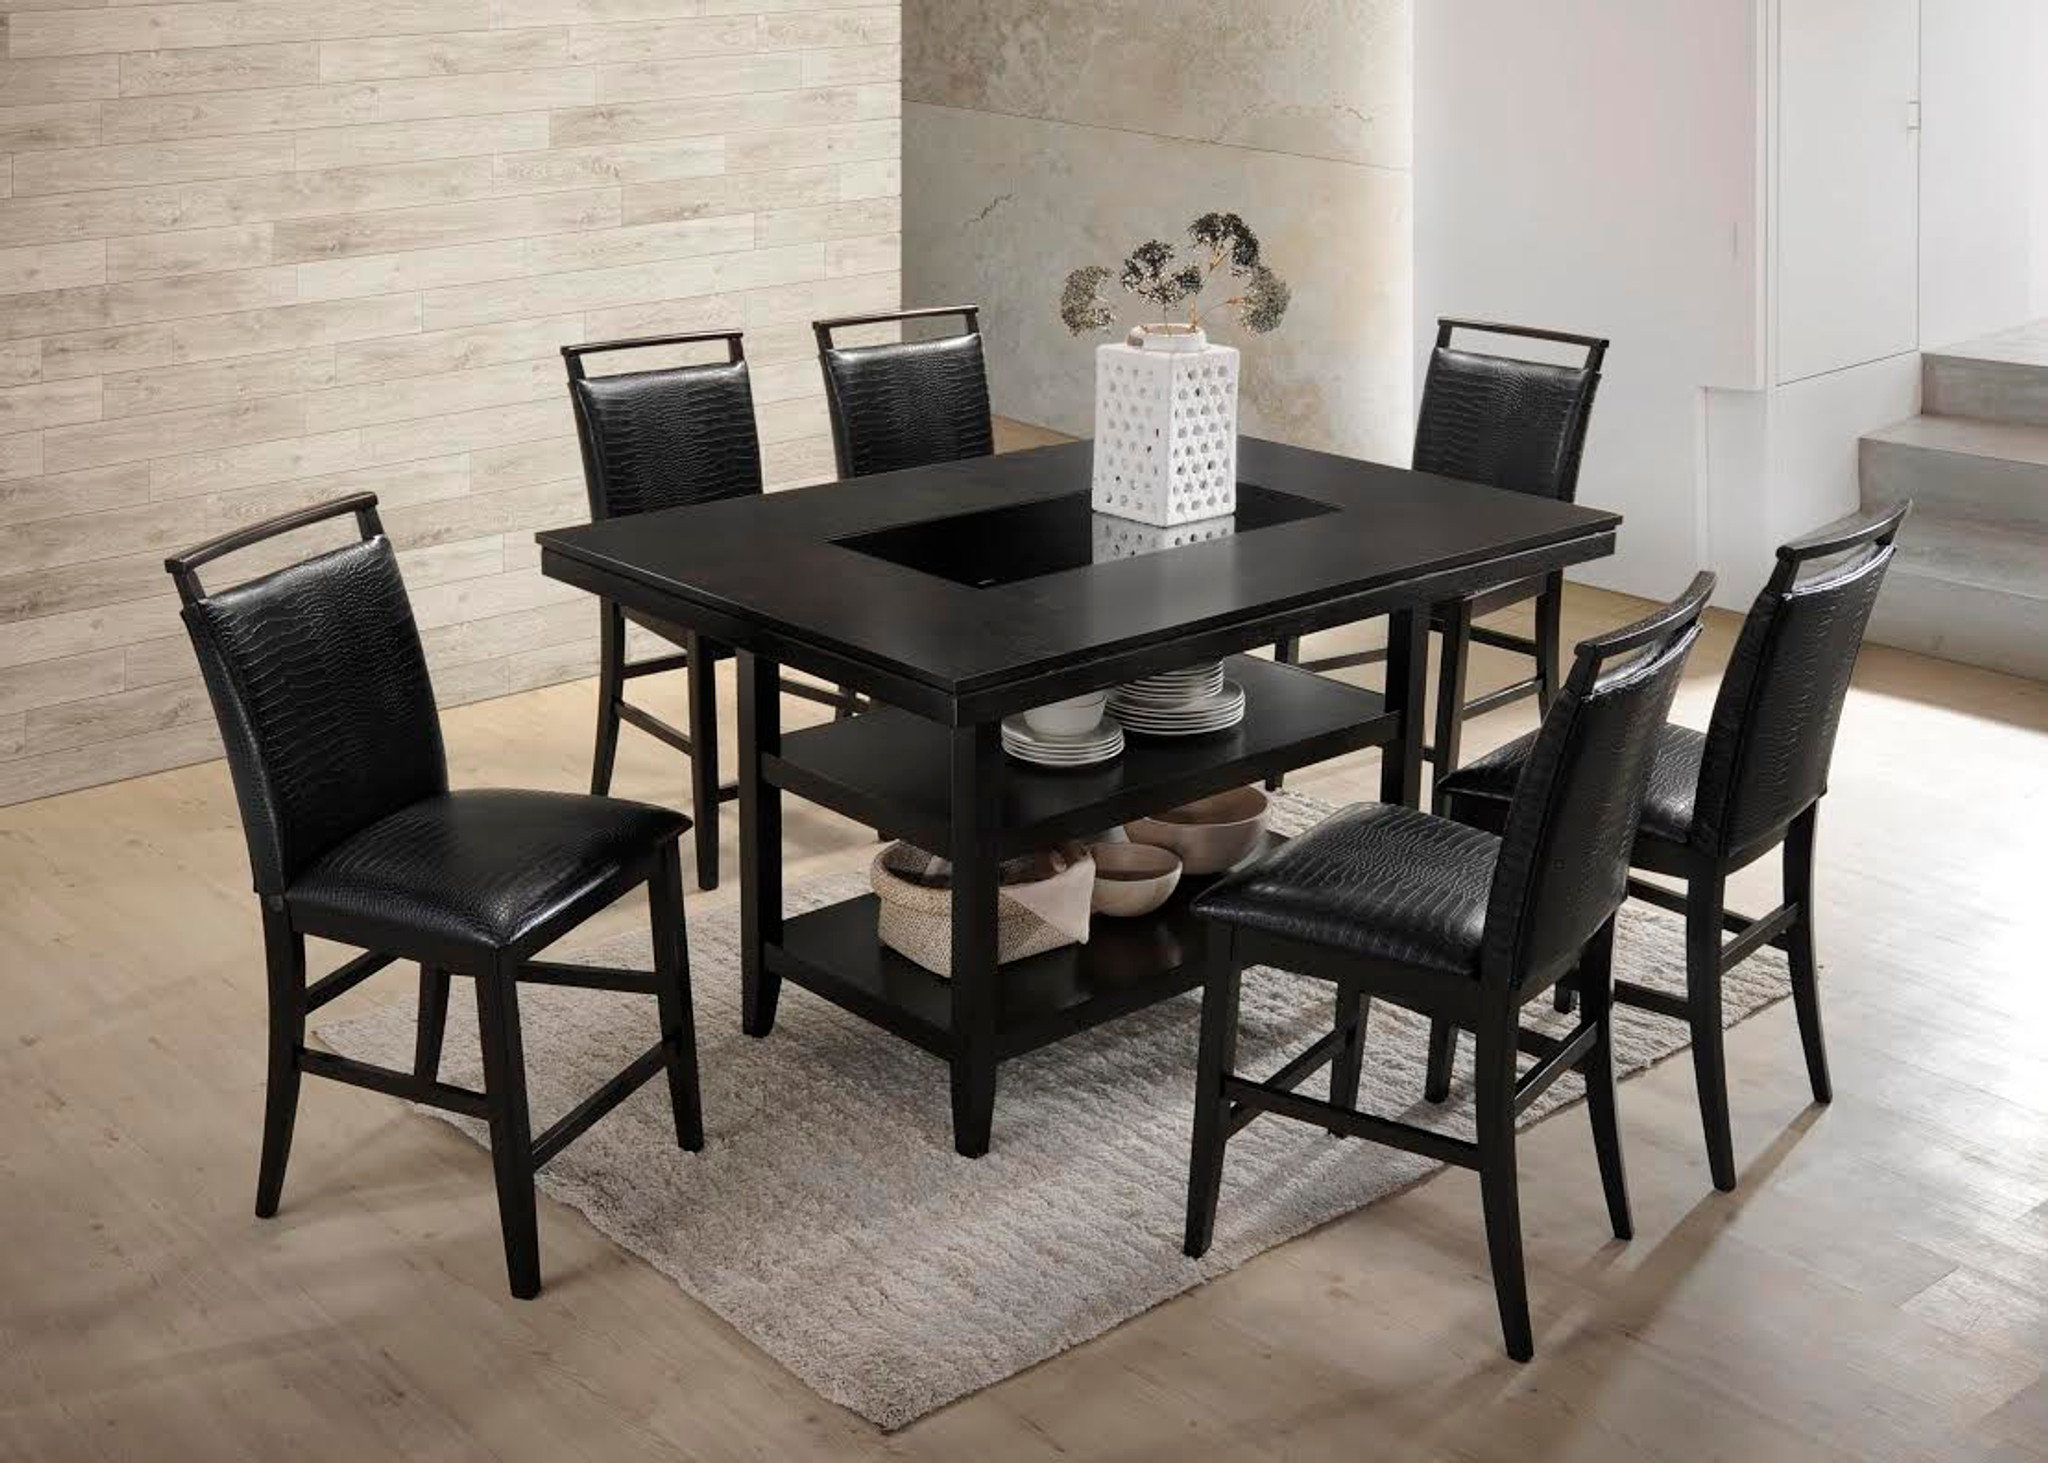 7PCS BLACK COUNTER HEIGHT DINING TABLE SET- BLACK CROCODILE